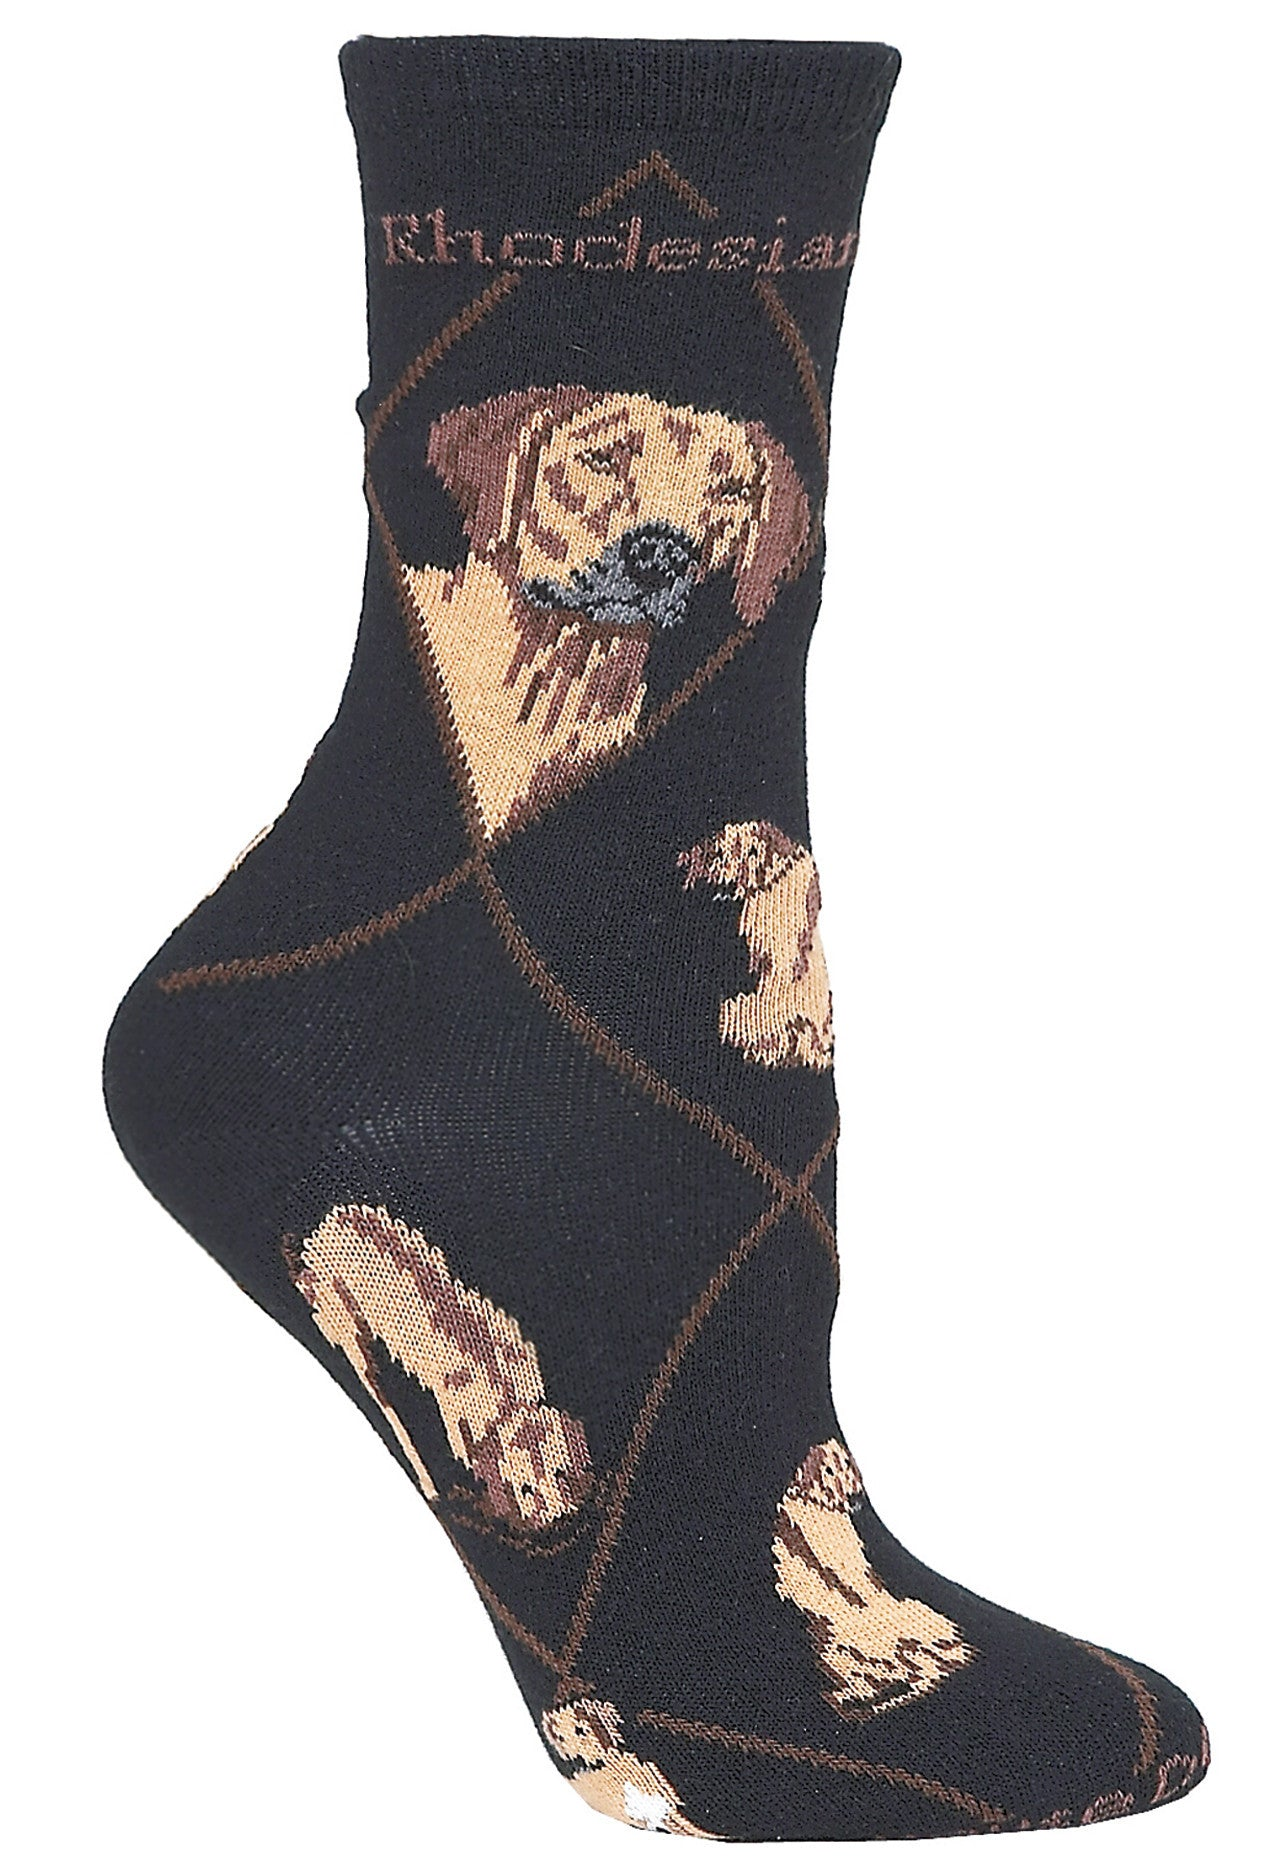 Rhodesian Ridgeback on Black Socks